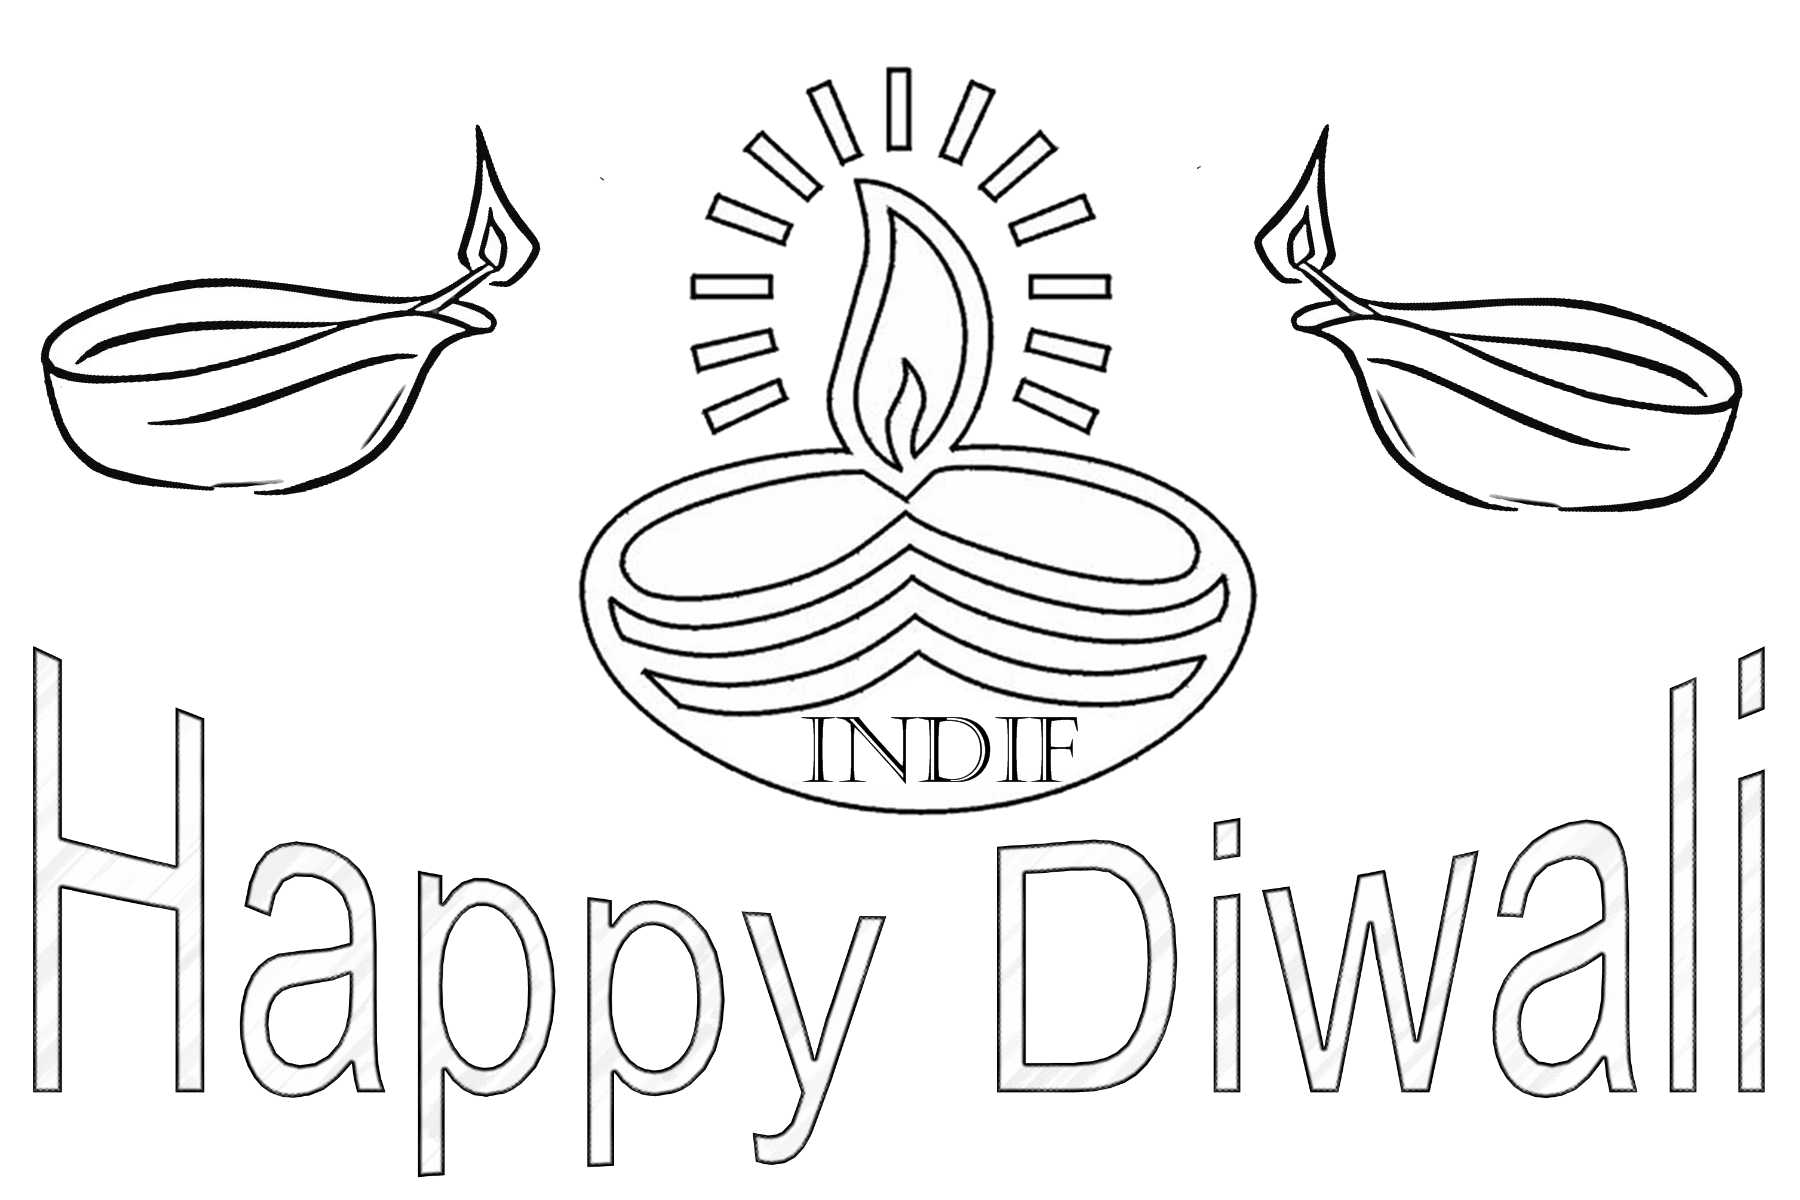 happy diwali images galleries facebook whatsapp photos full hd wallpapers download